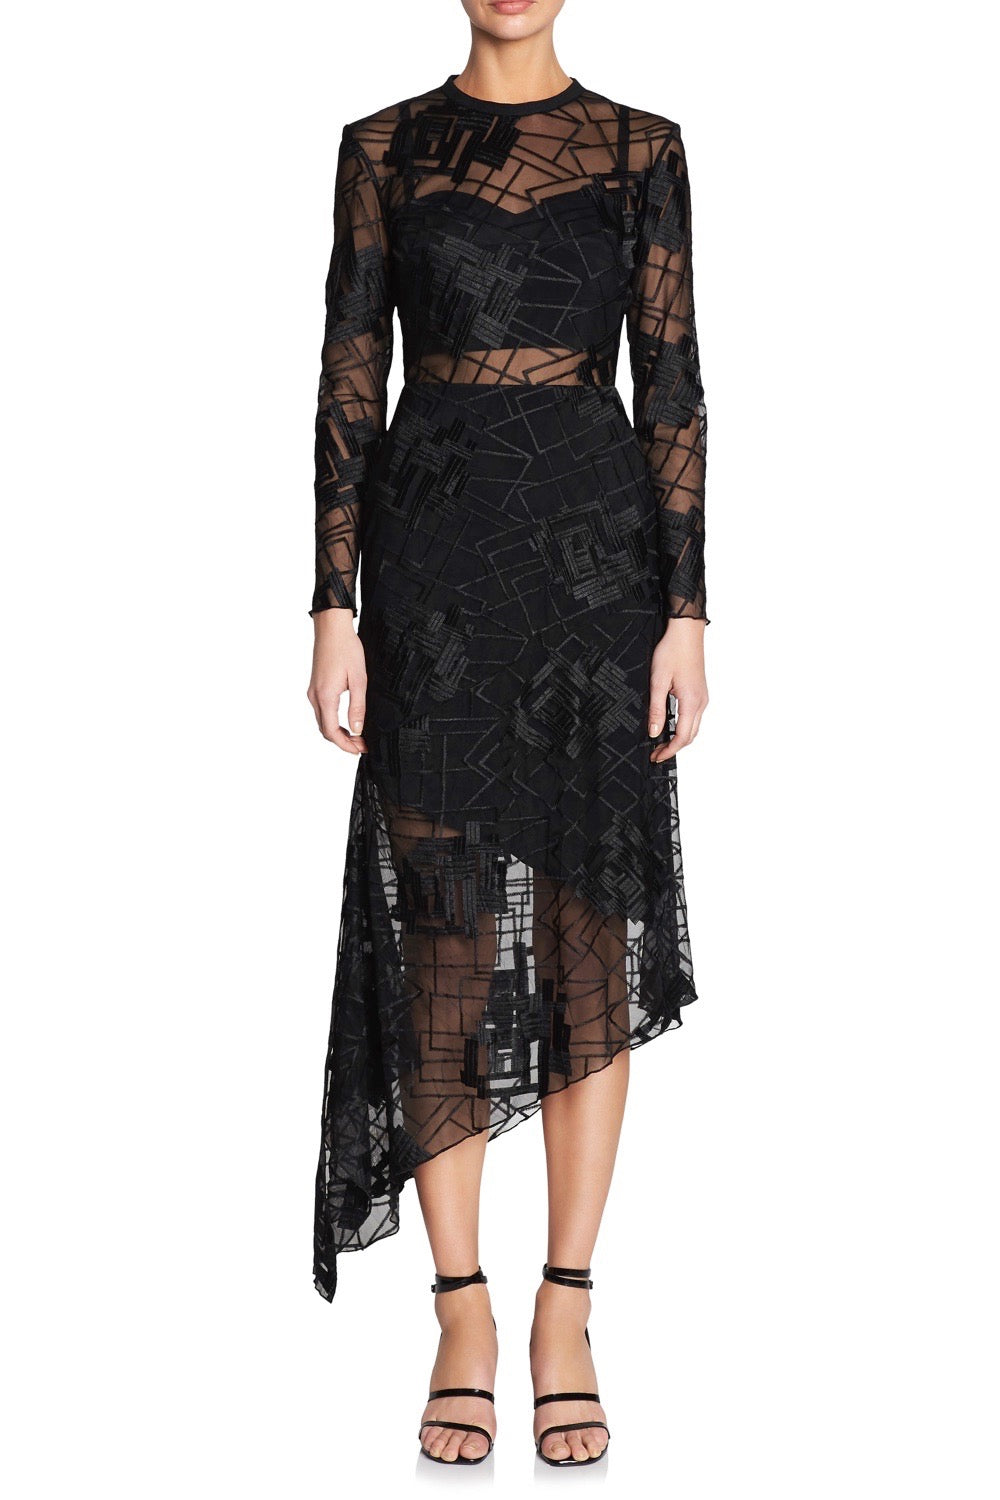 SMOKE & MIRRORS L/S DRESS